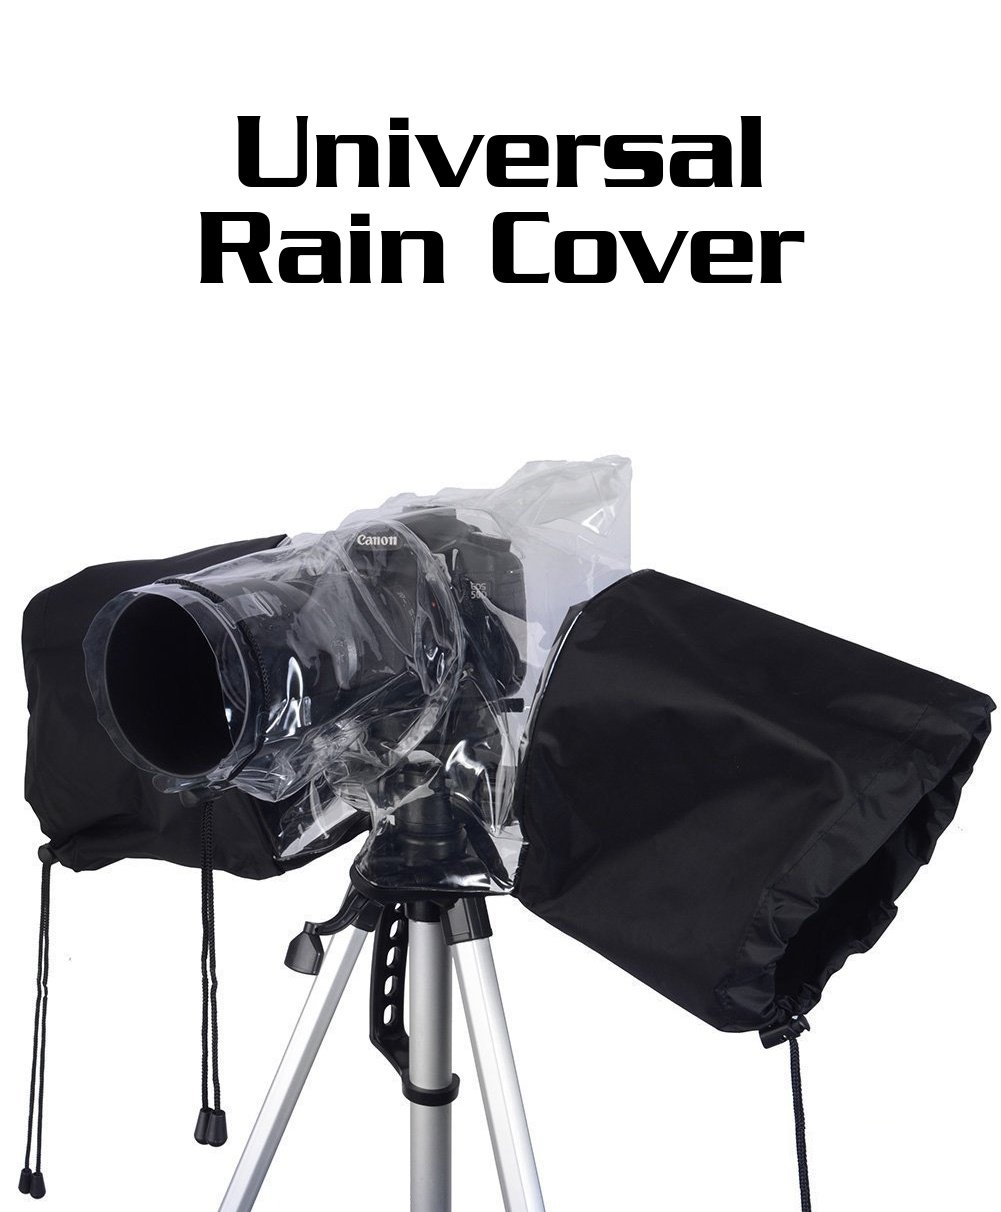 ** Camera Rain Cover ** Coat Protector Rainproof for Canon Nikon and Other Digital SLR Cameras (Fulat)